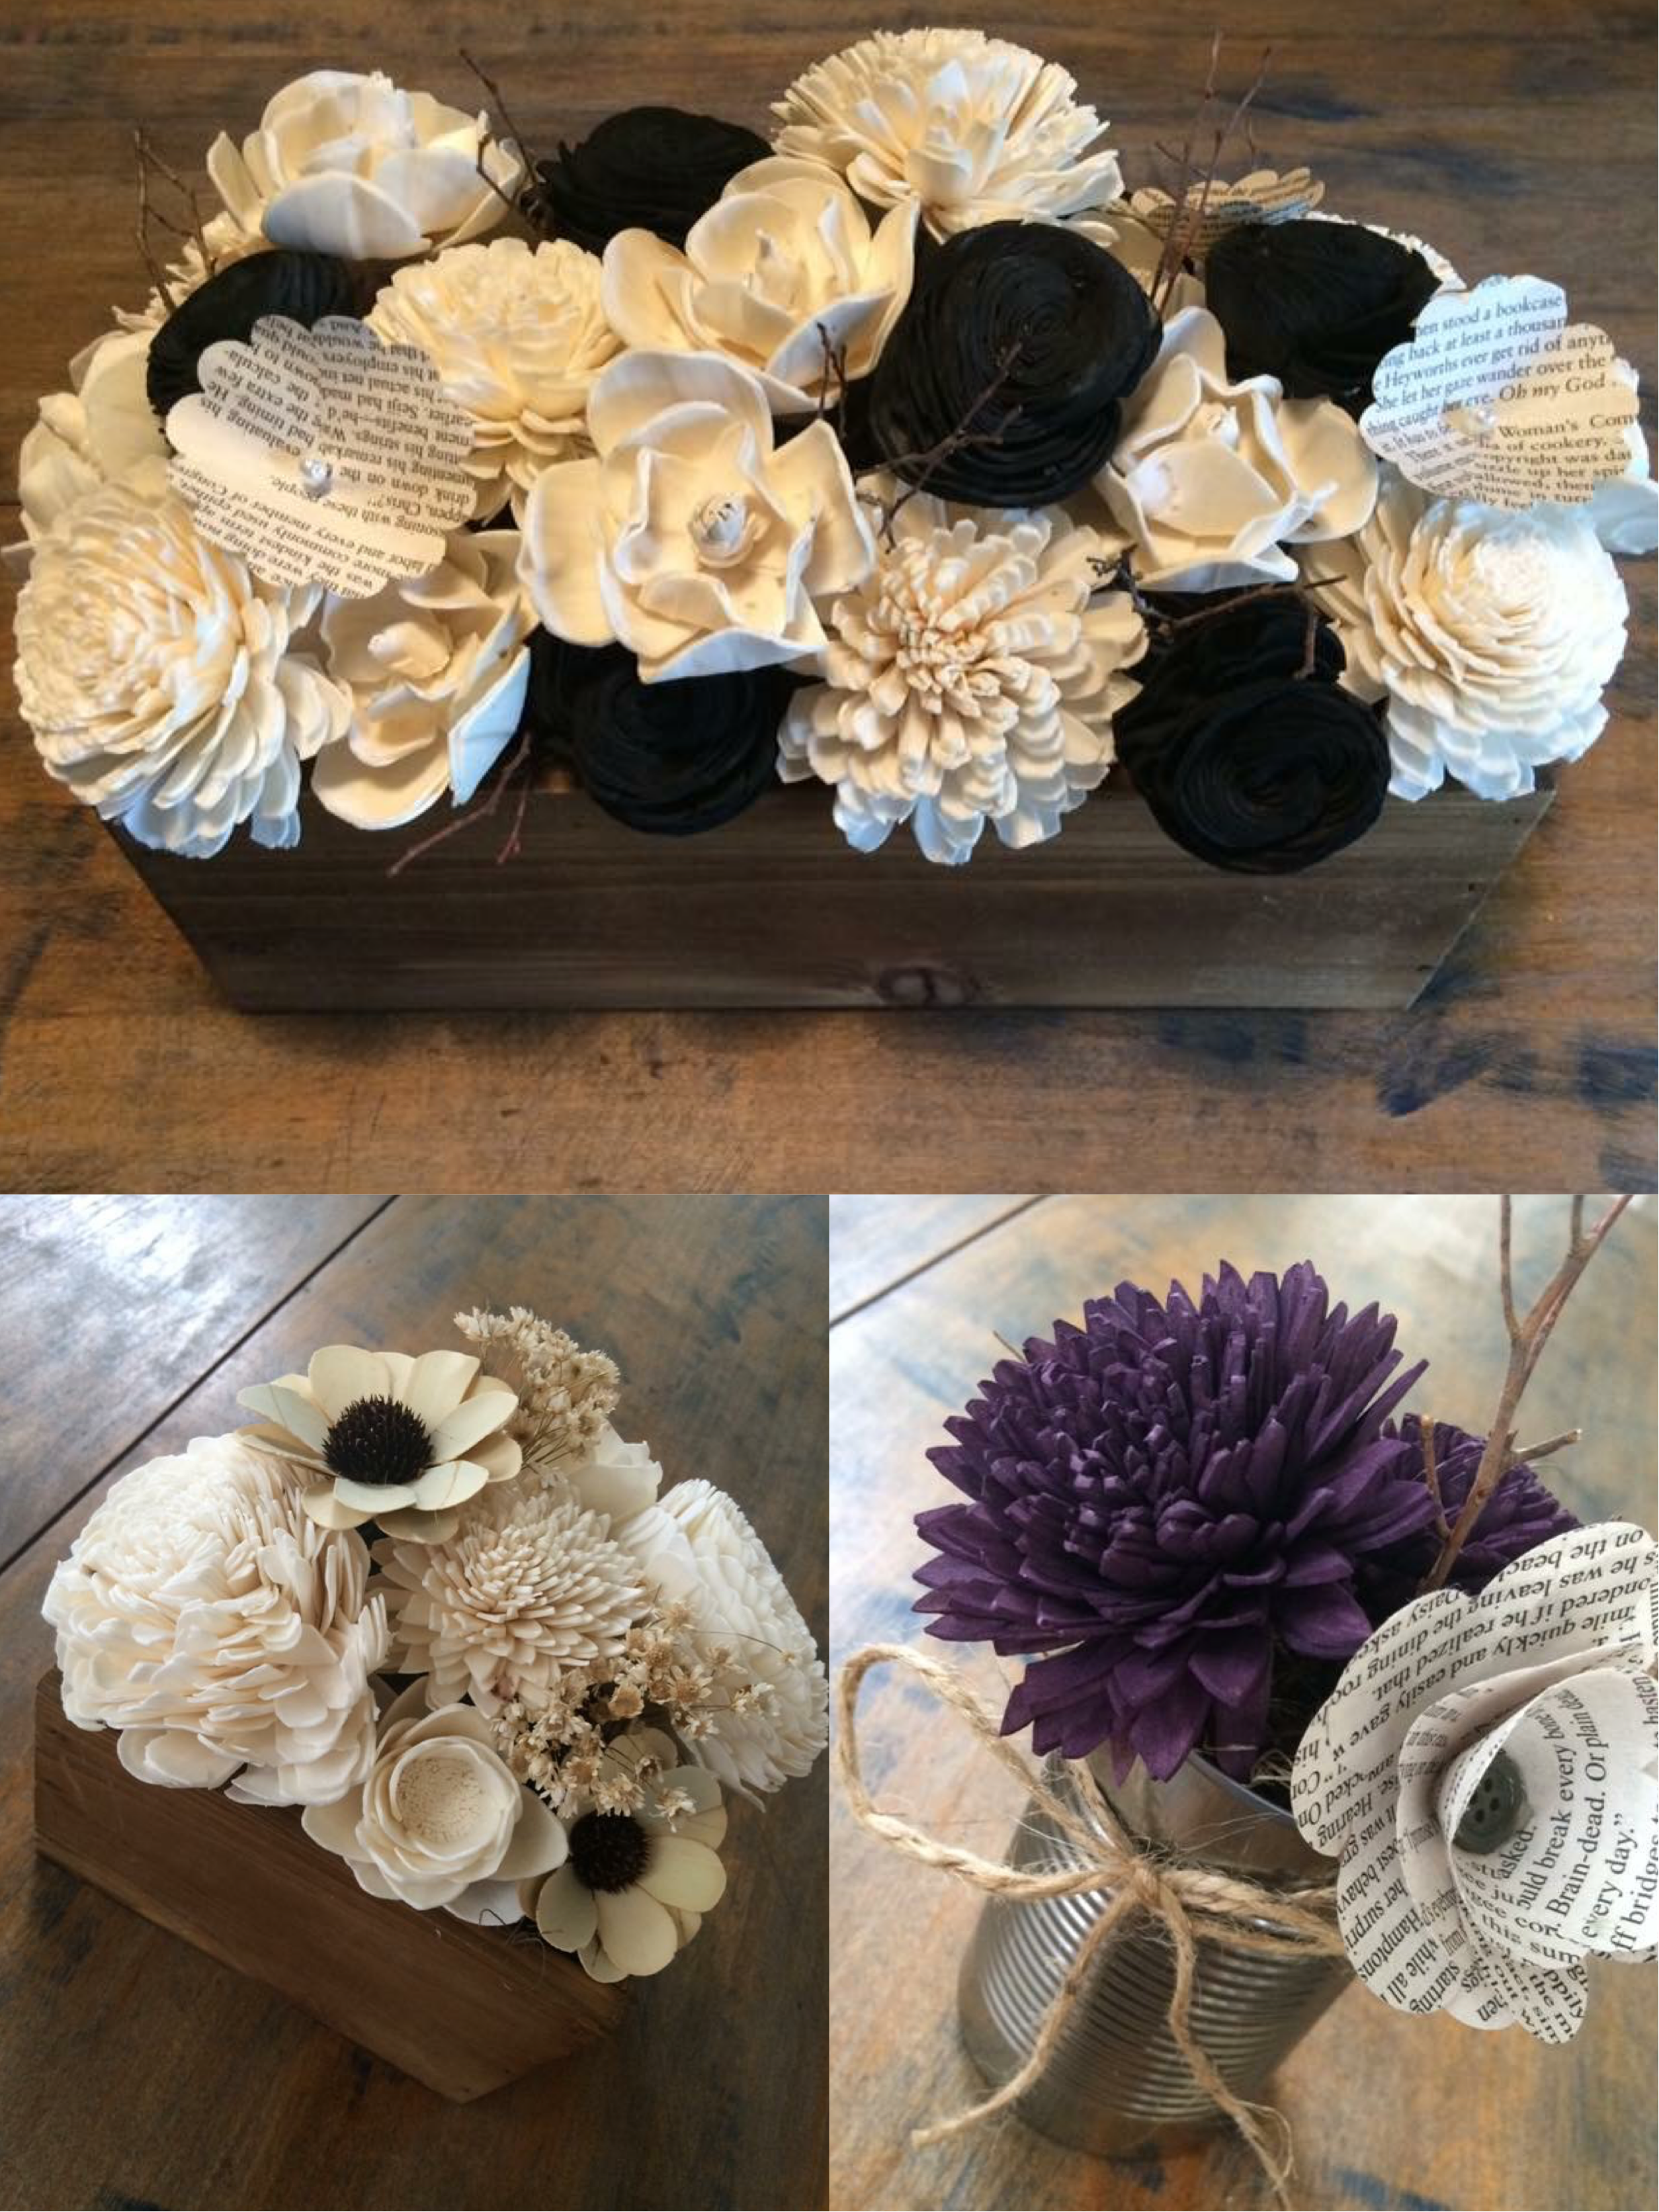 Craft with sola wood flowers easily make home and wedding decor craft with sola wood flowers easily make home and wedding decor diy centerpieces bouquets and up cycled gifts izmirmasajfo